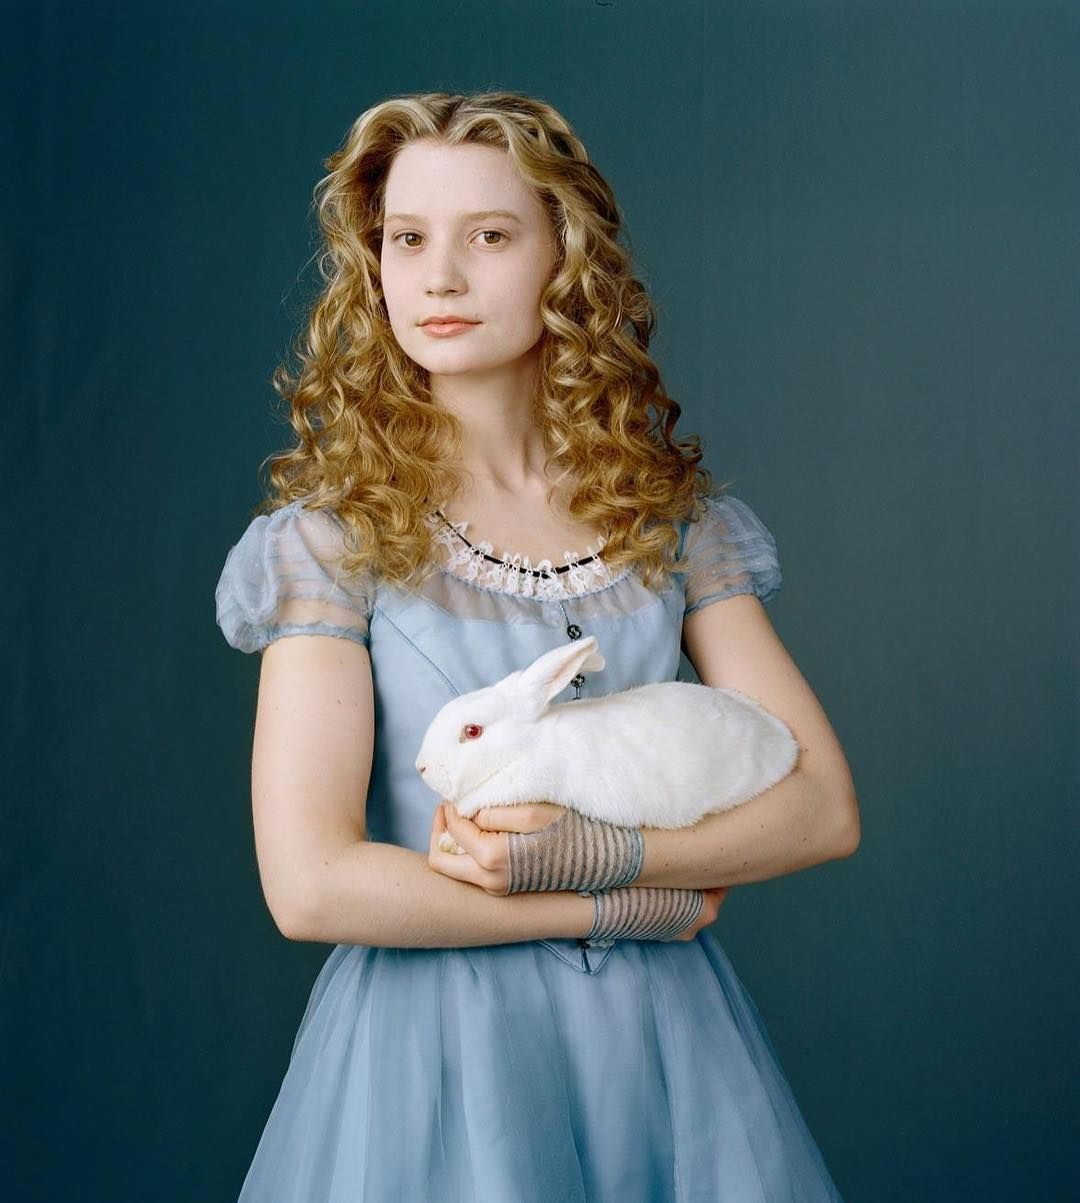 New Posters And Still Alice In Wonderland 2009 10242108 502 720